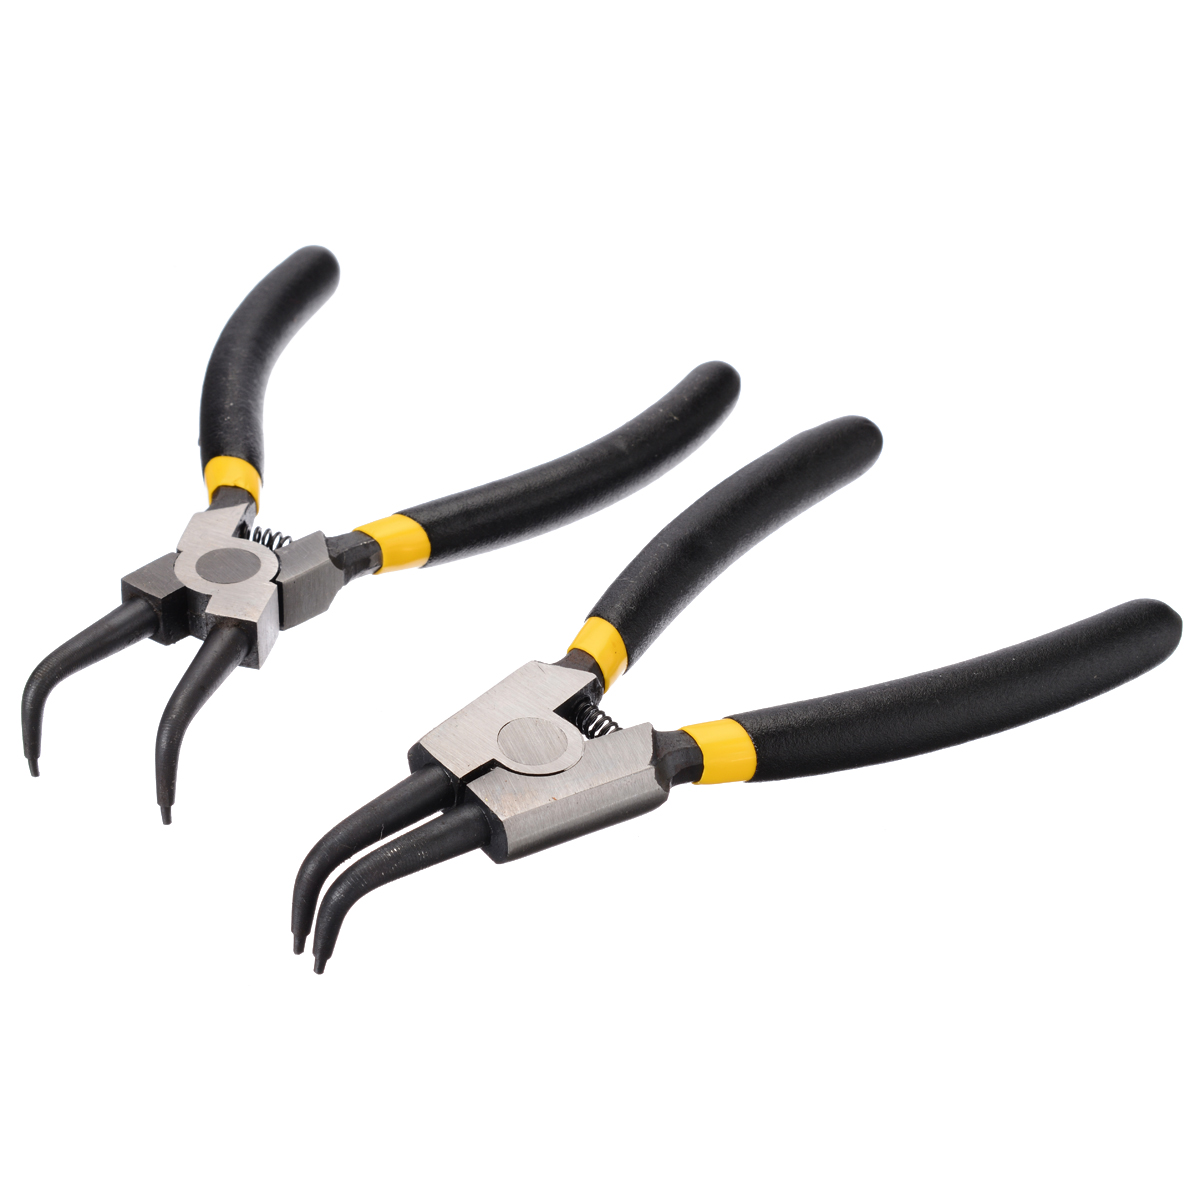 4pcs New 6 inch 150mm Circlip Pliers Set Snap Ring Plier Angled/Straight Hand Pliers Tools Kit for Inner & Outer Rings